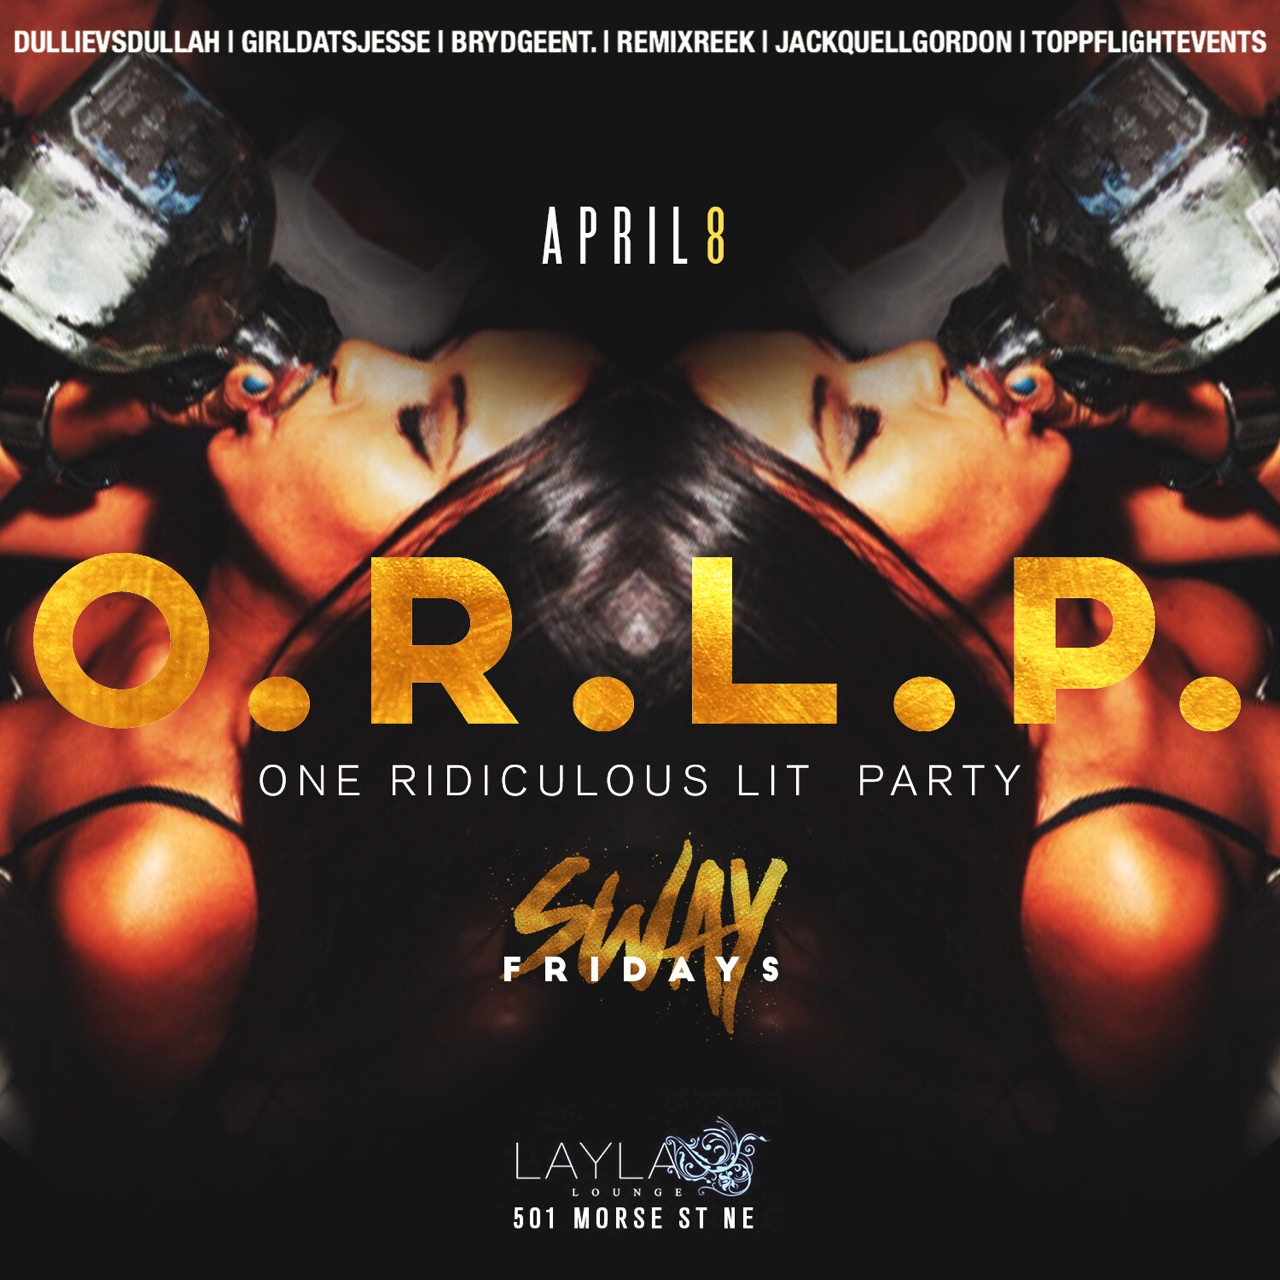 One Ridiculous Lit Party